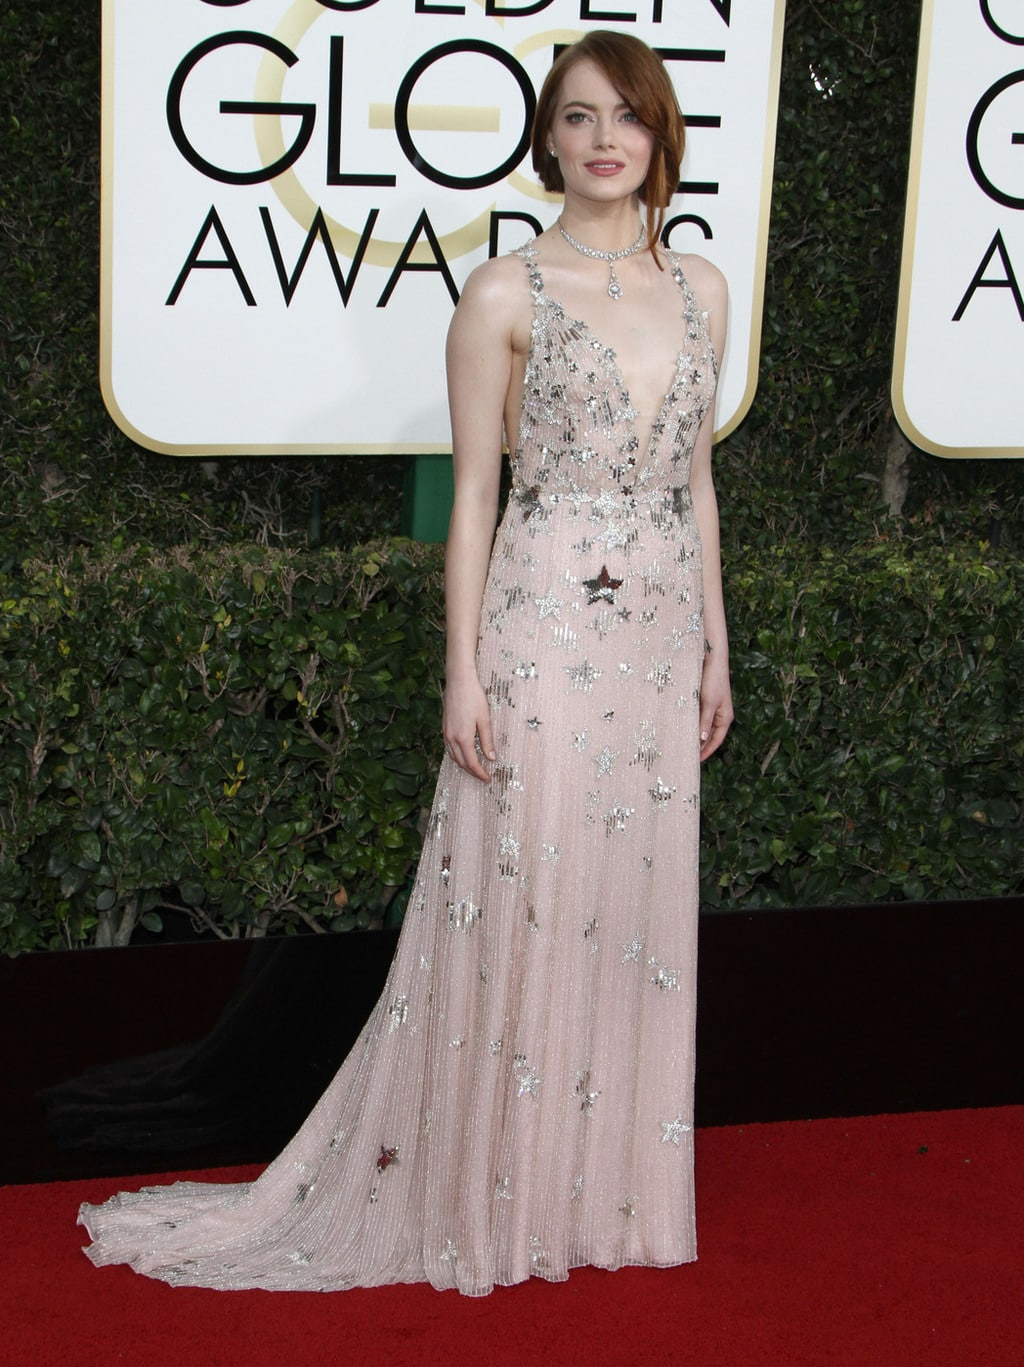 Emma Stone wearing a light pink Valentino gown with silver stars on the 2017 Golden Globes red carpet